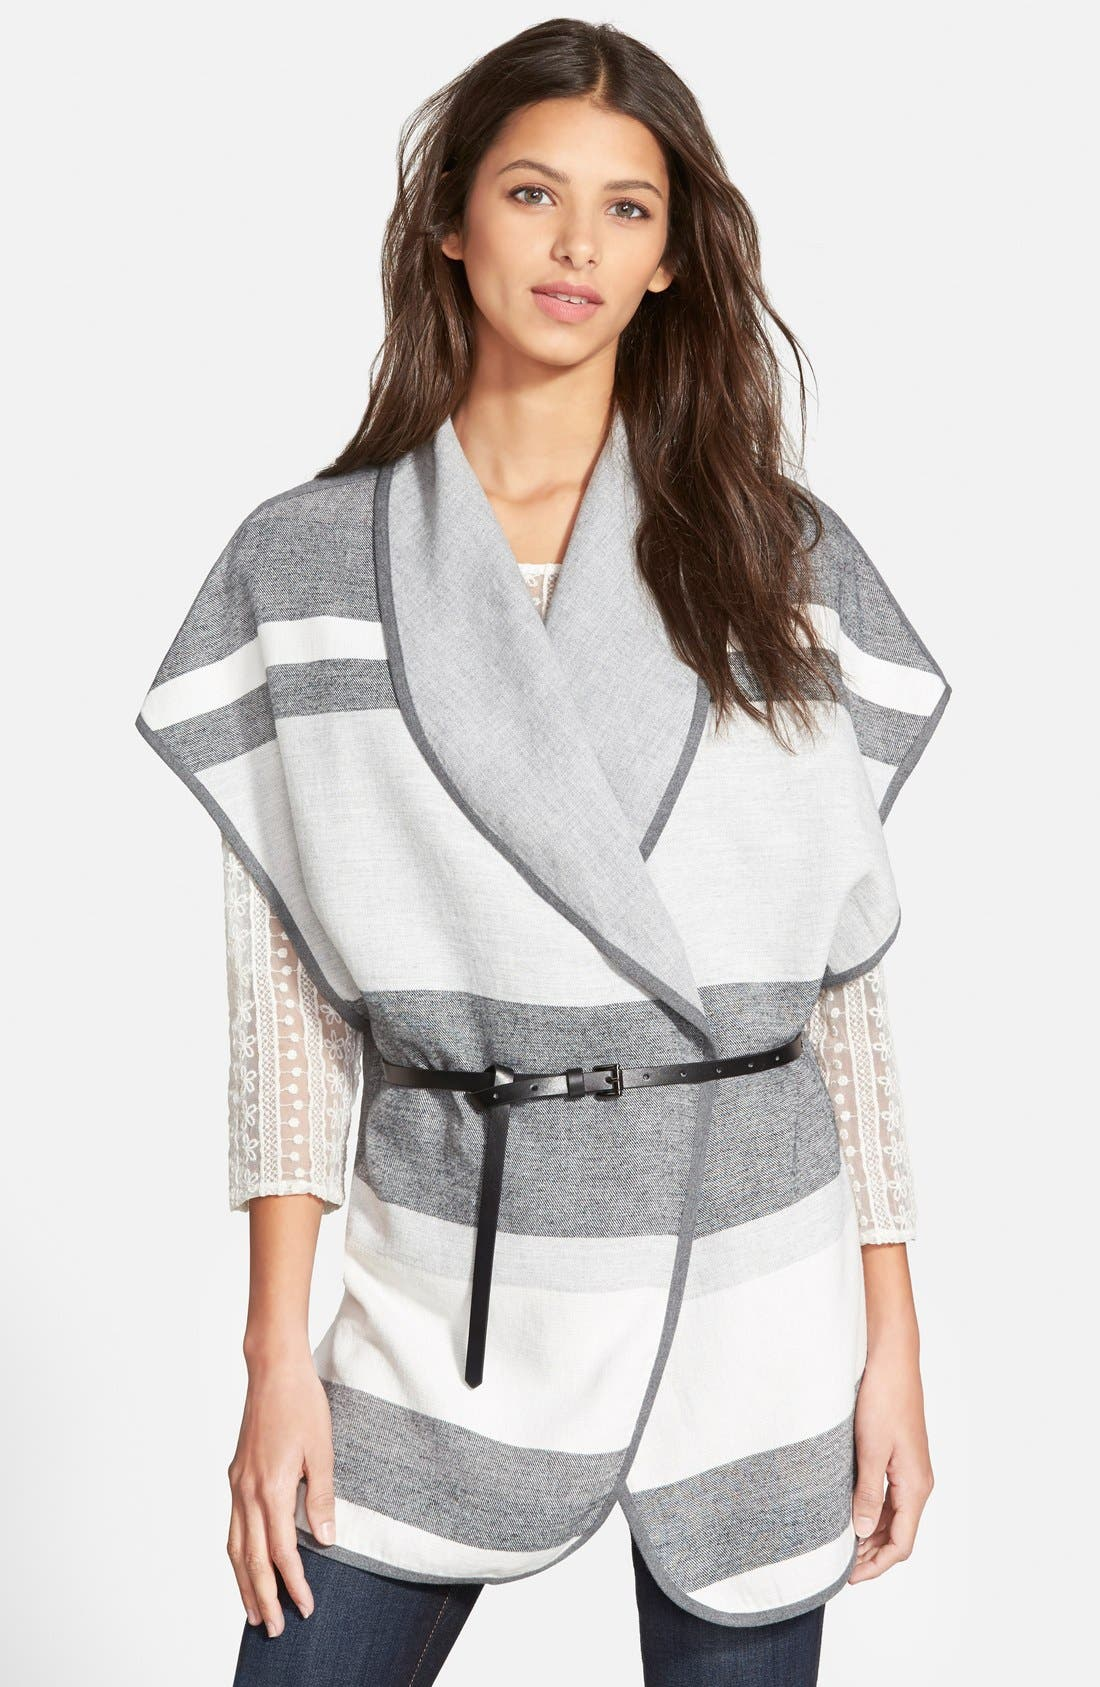 HINGE, Stripe Cape, Main thumbnail 1, color, 020